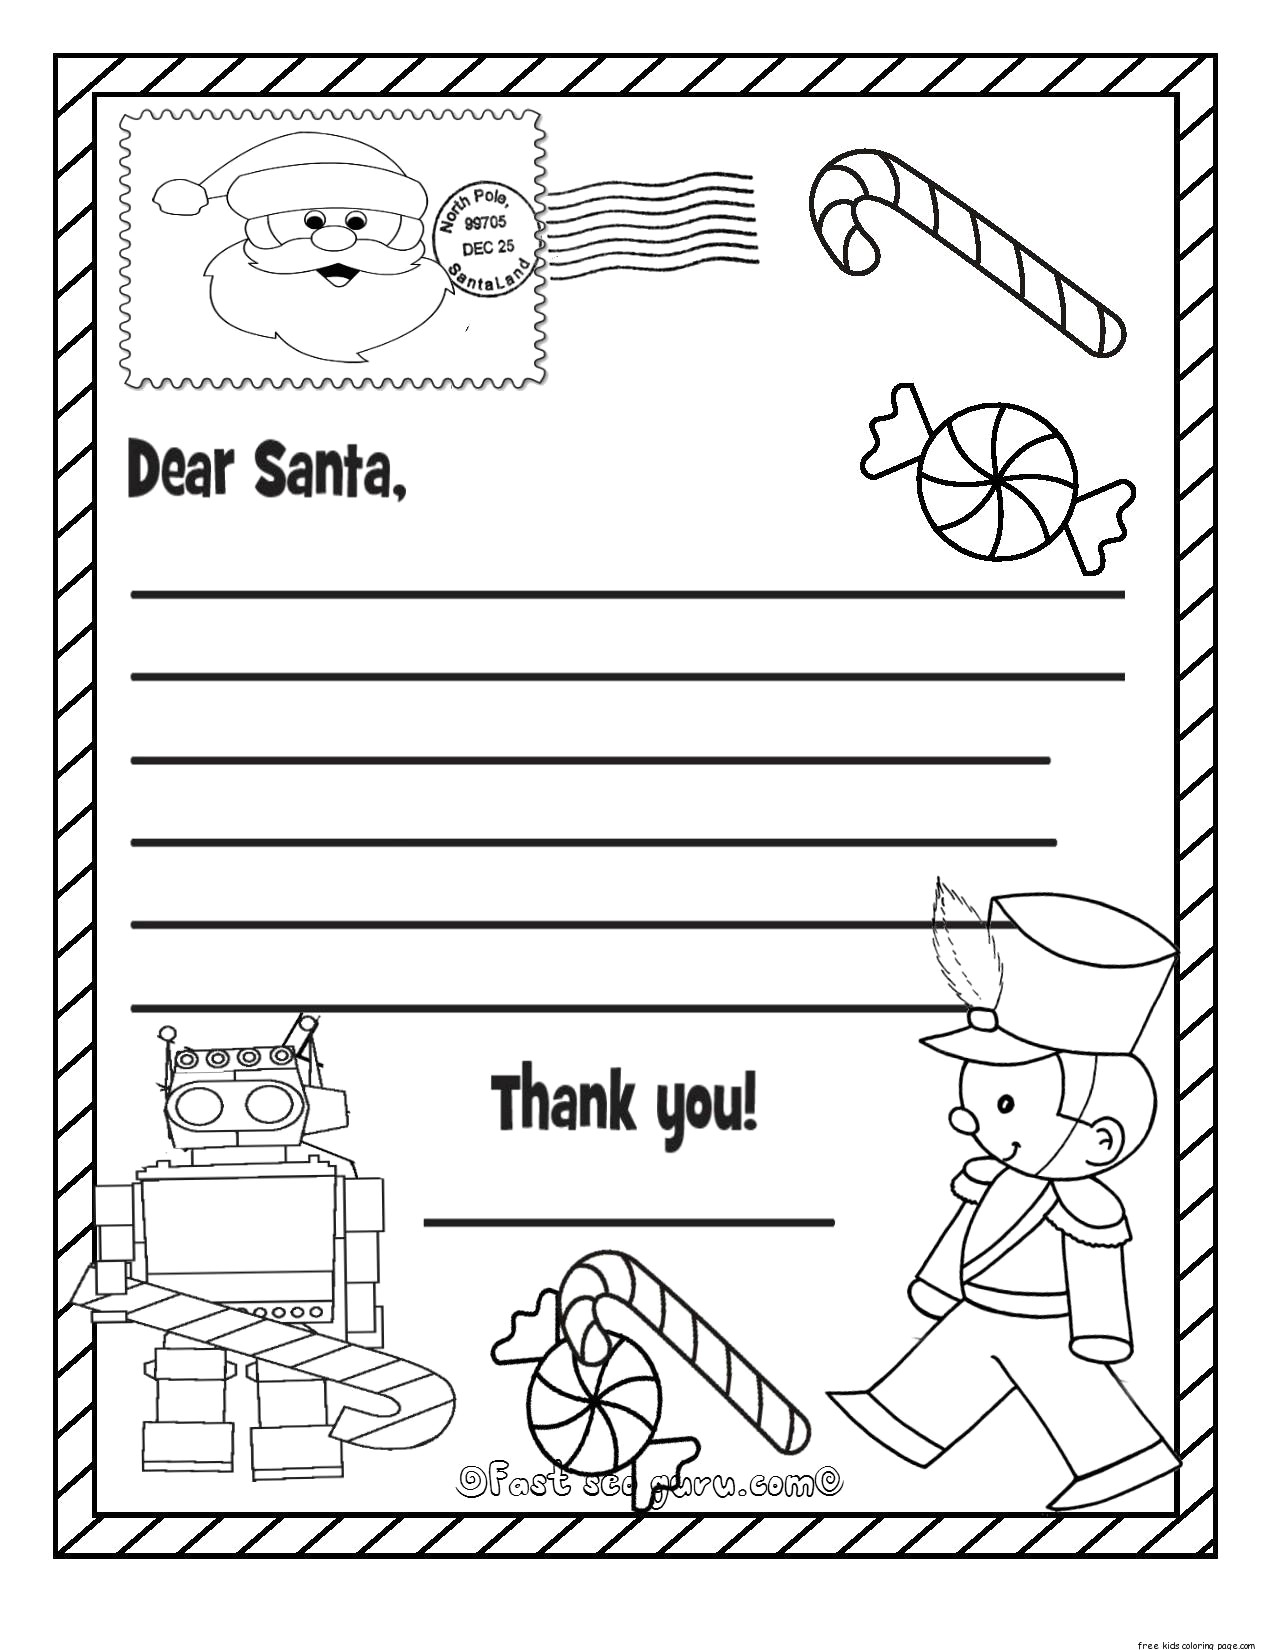 Santa List Coloring Pages With Printable Christmas Wish To Claus For Kids Kidsfree